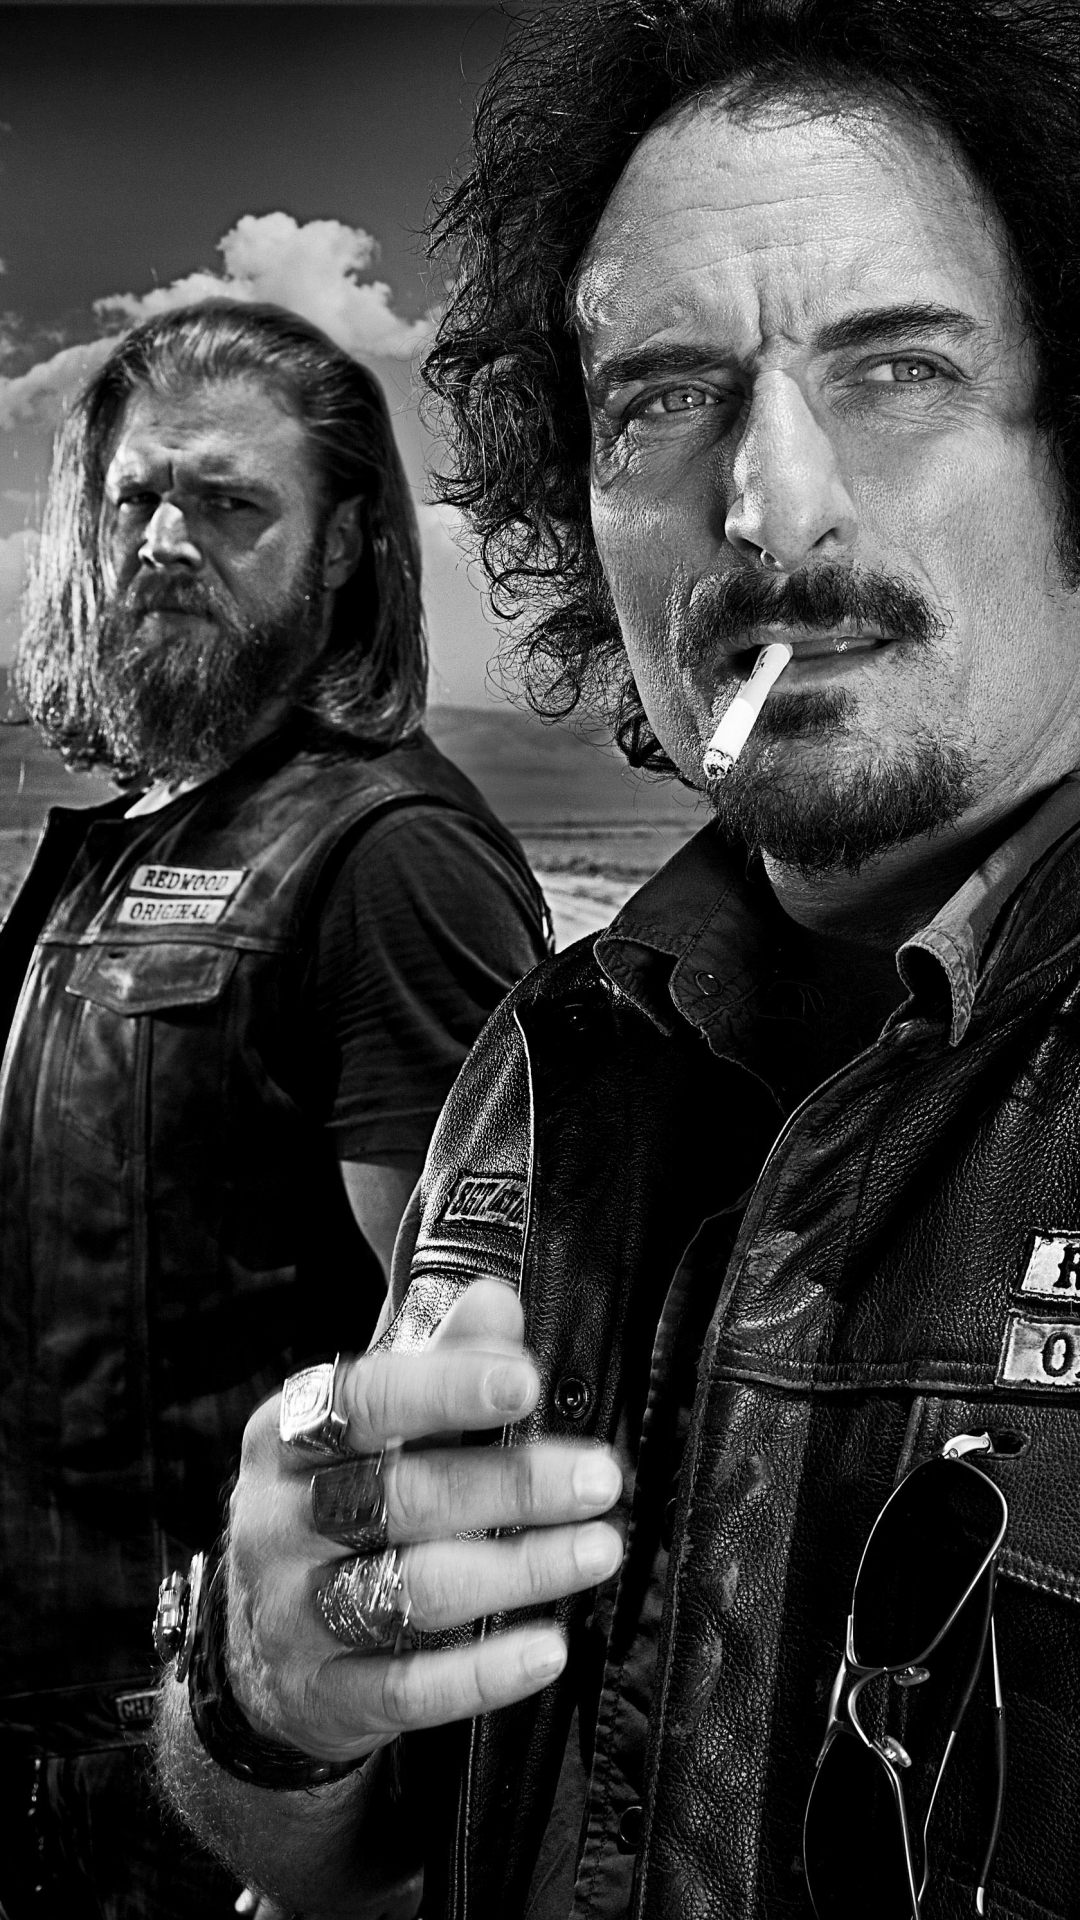 Tv Show Sons Of Anarchy 1080x1920 Wallpaper Id 150067 Mobile